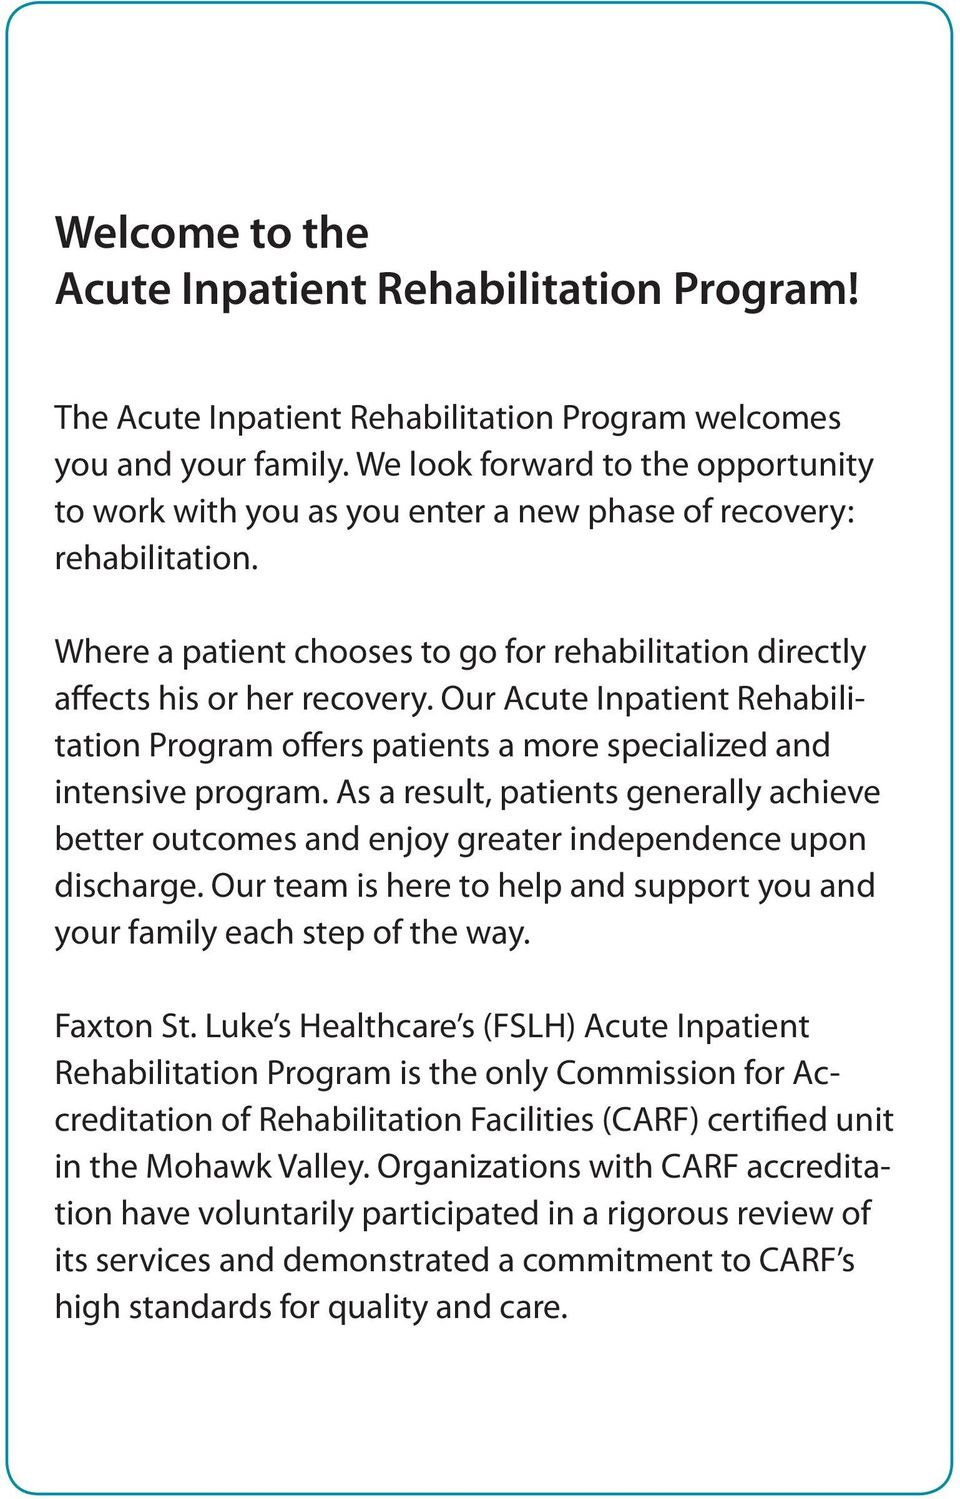 Our Acute Inpatient Rehabilitation Program offers patients a more specialized and intensive program.